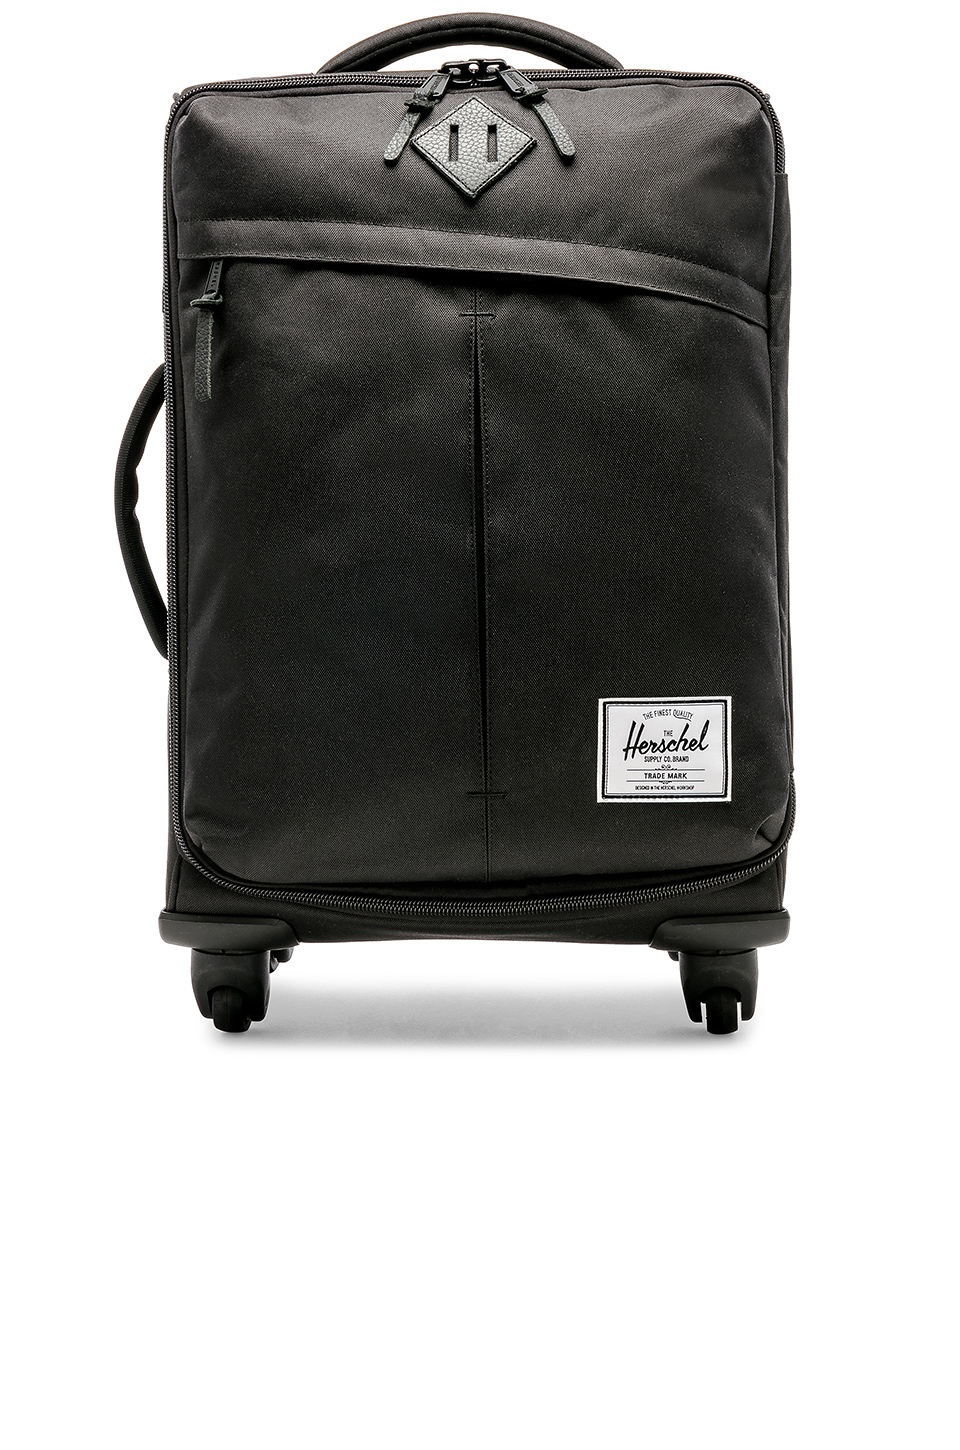 Buy Original Herschel Supply Co. Highland Luggage at Indonesia ... fb9440cab90ba